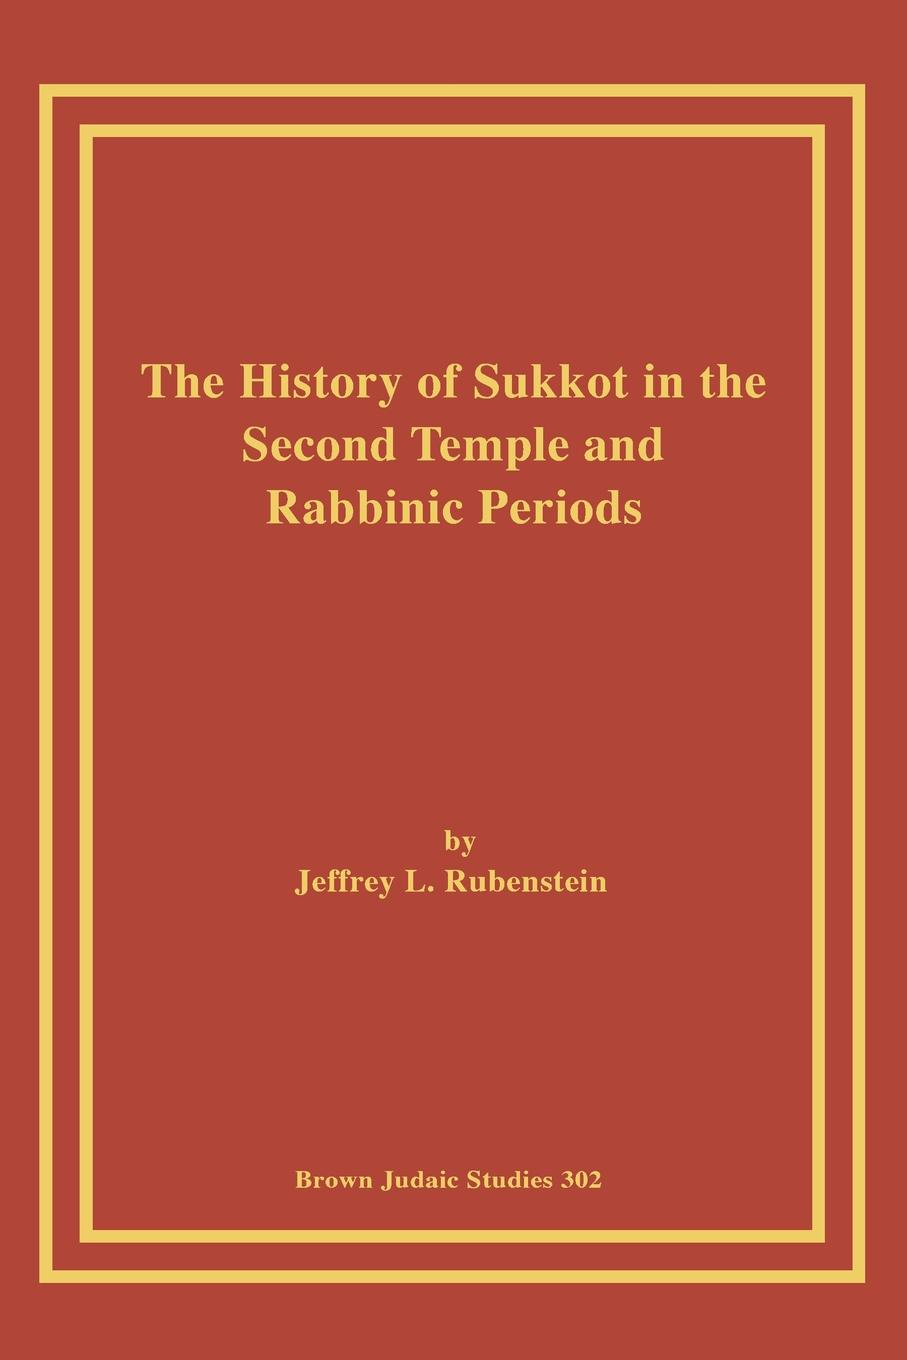 Jeffrey L. Rubenstein The History of Sukkot in the Second Temple and Rabbinic Periods